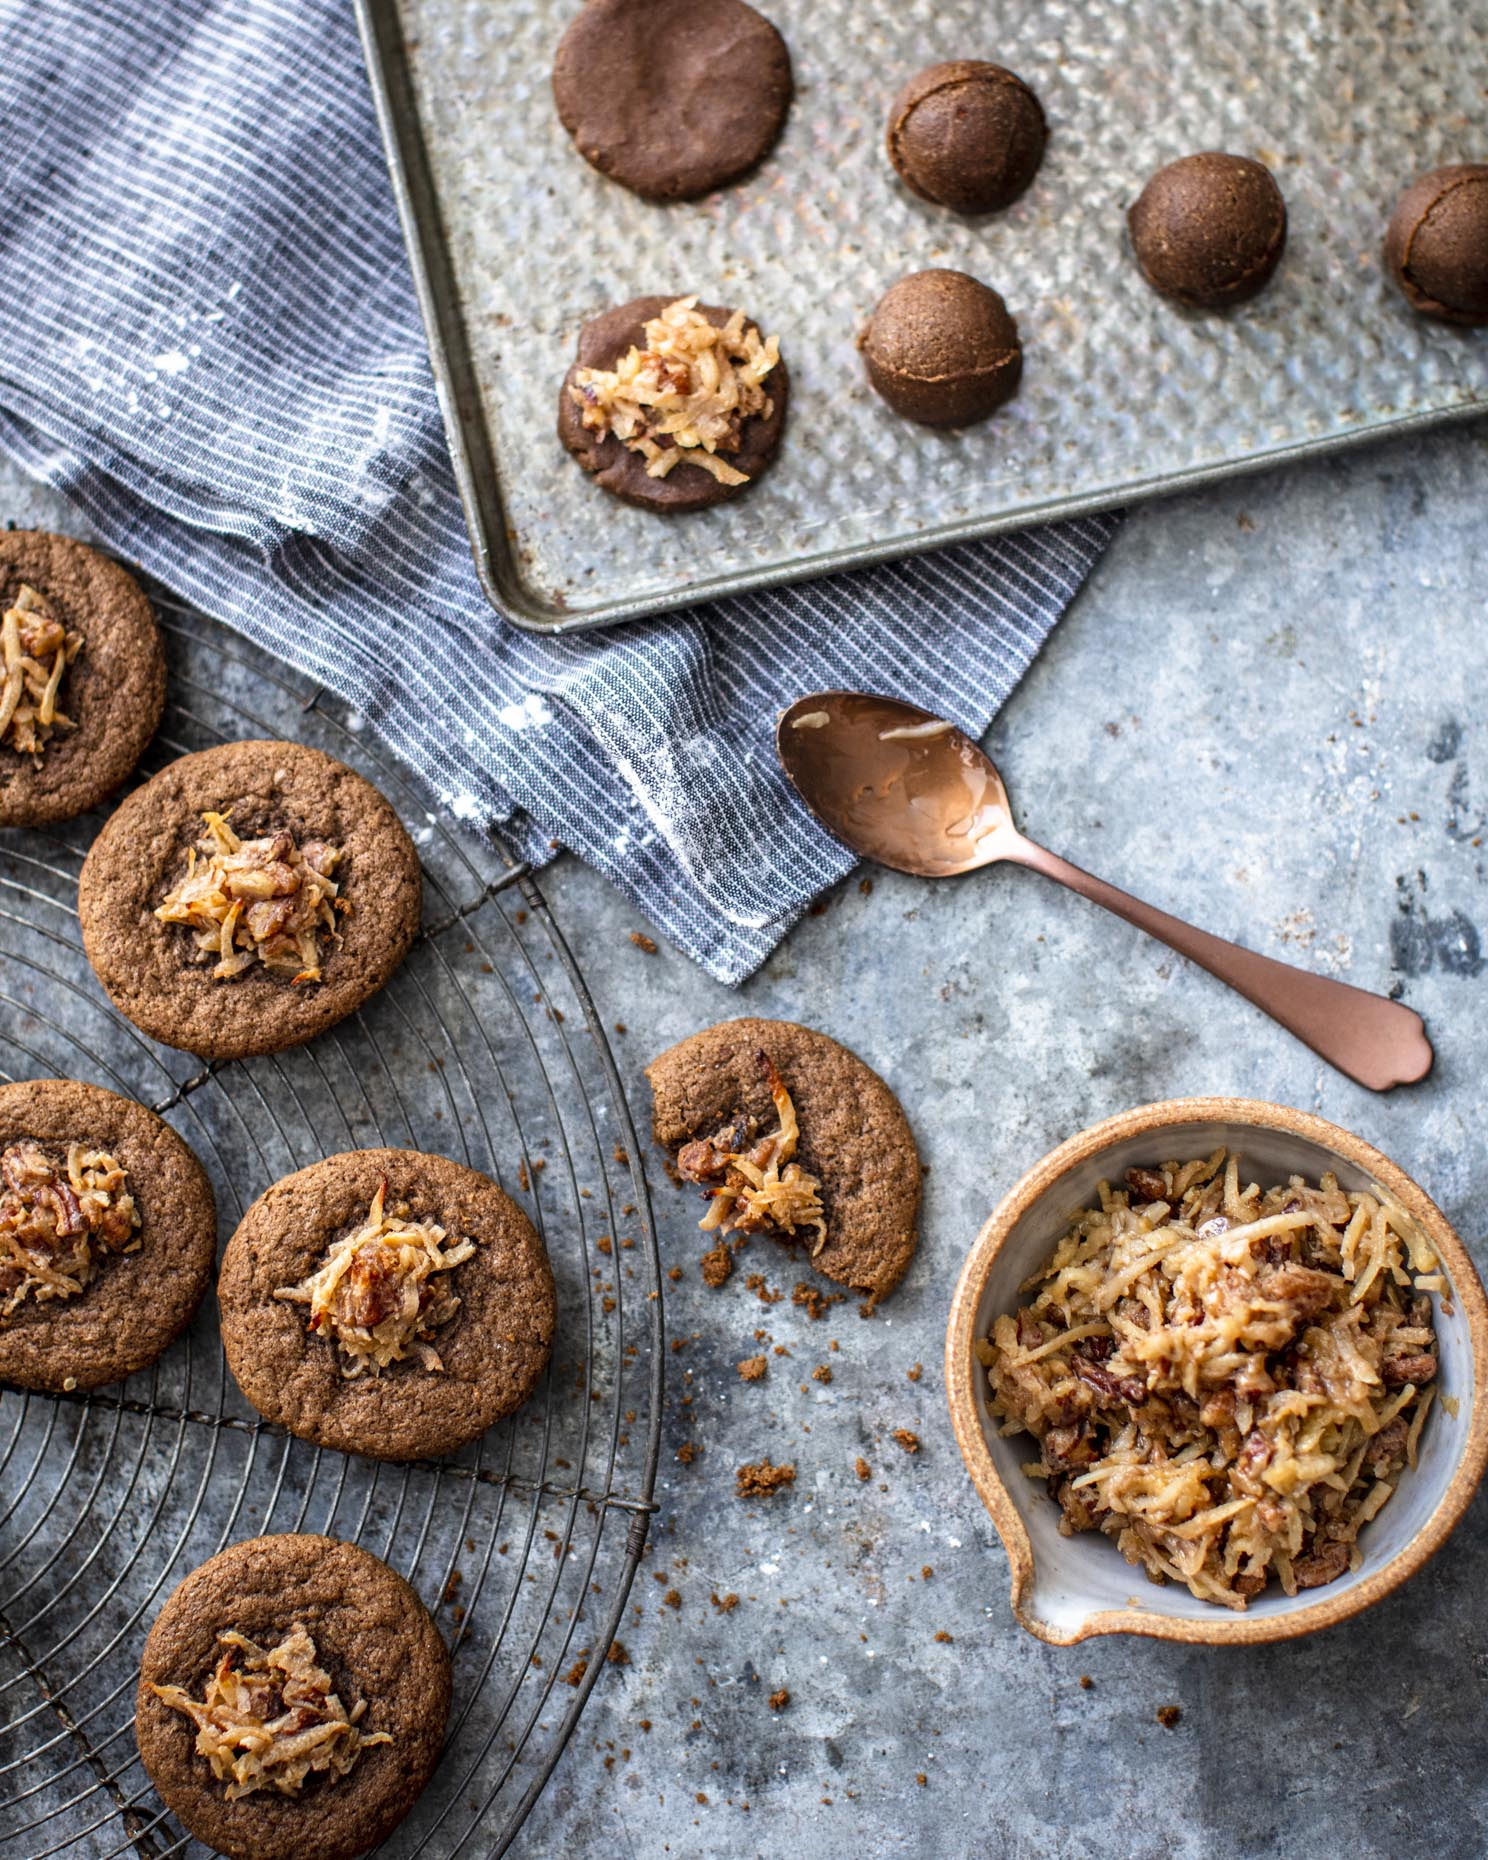 larsen_coconut_pecan_german_chocolate_cookies_0036